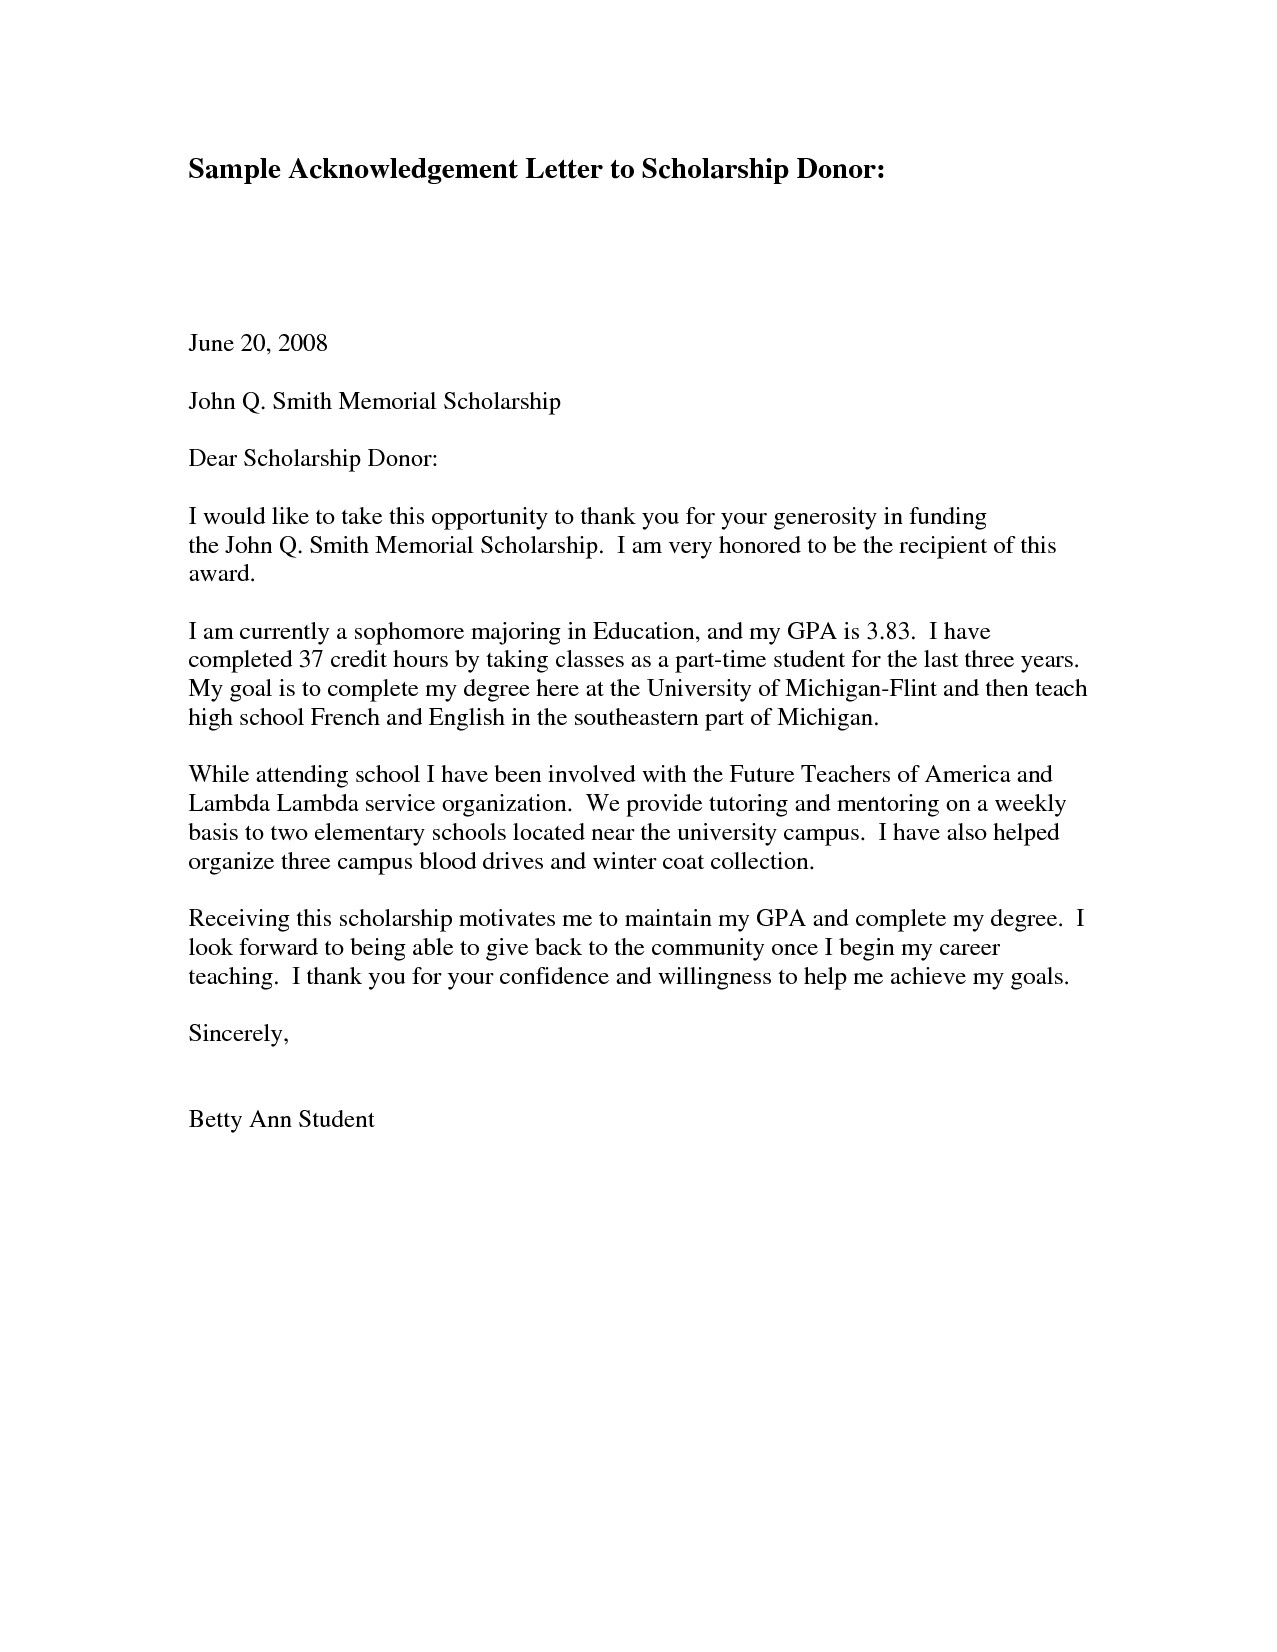 Scholarship Thank You Letter Template - Scholarship Thank You Letter Sample Http Jobsearch About Od